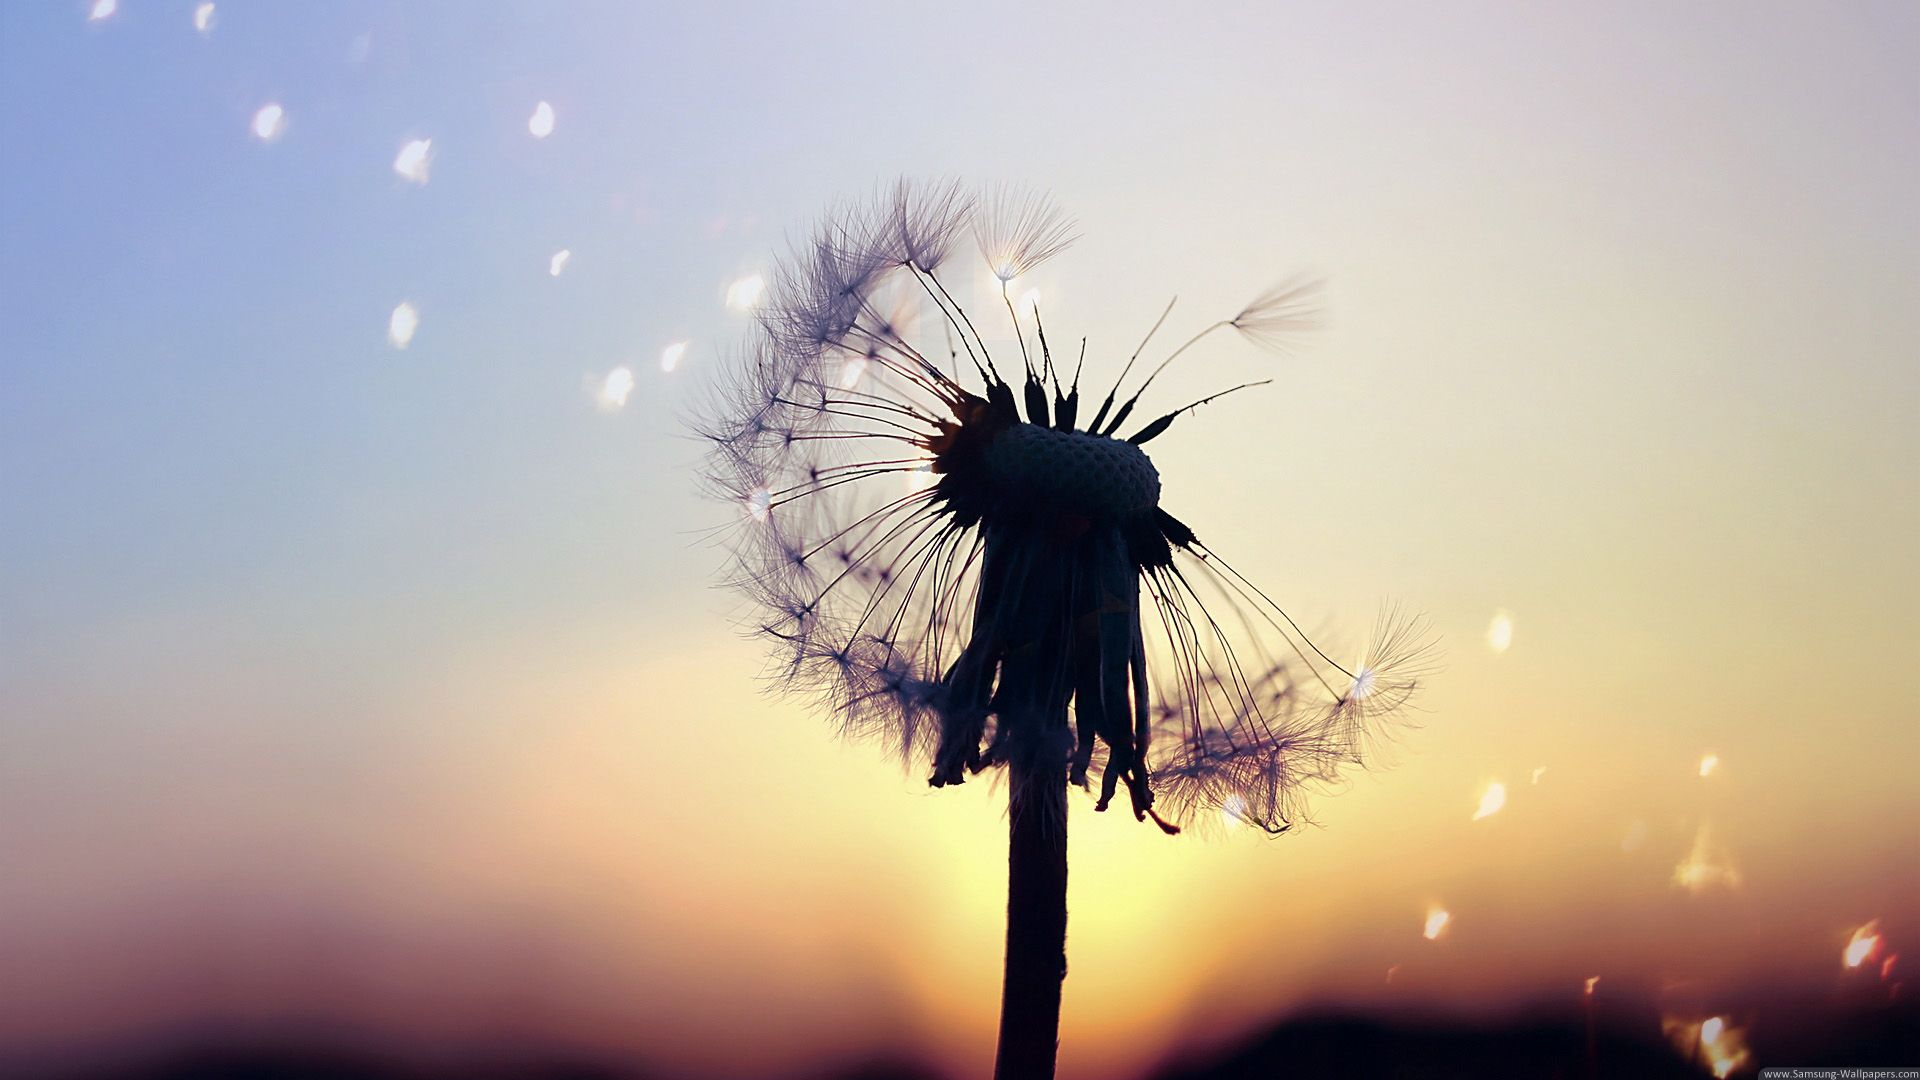 Dandelion wallpaper and themes